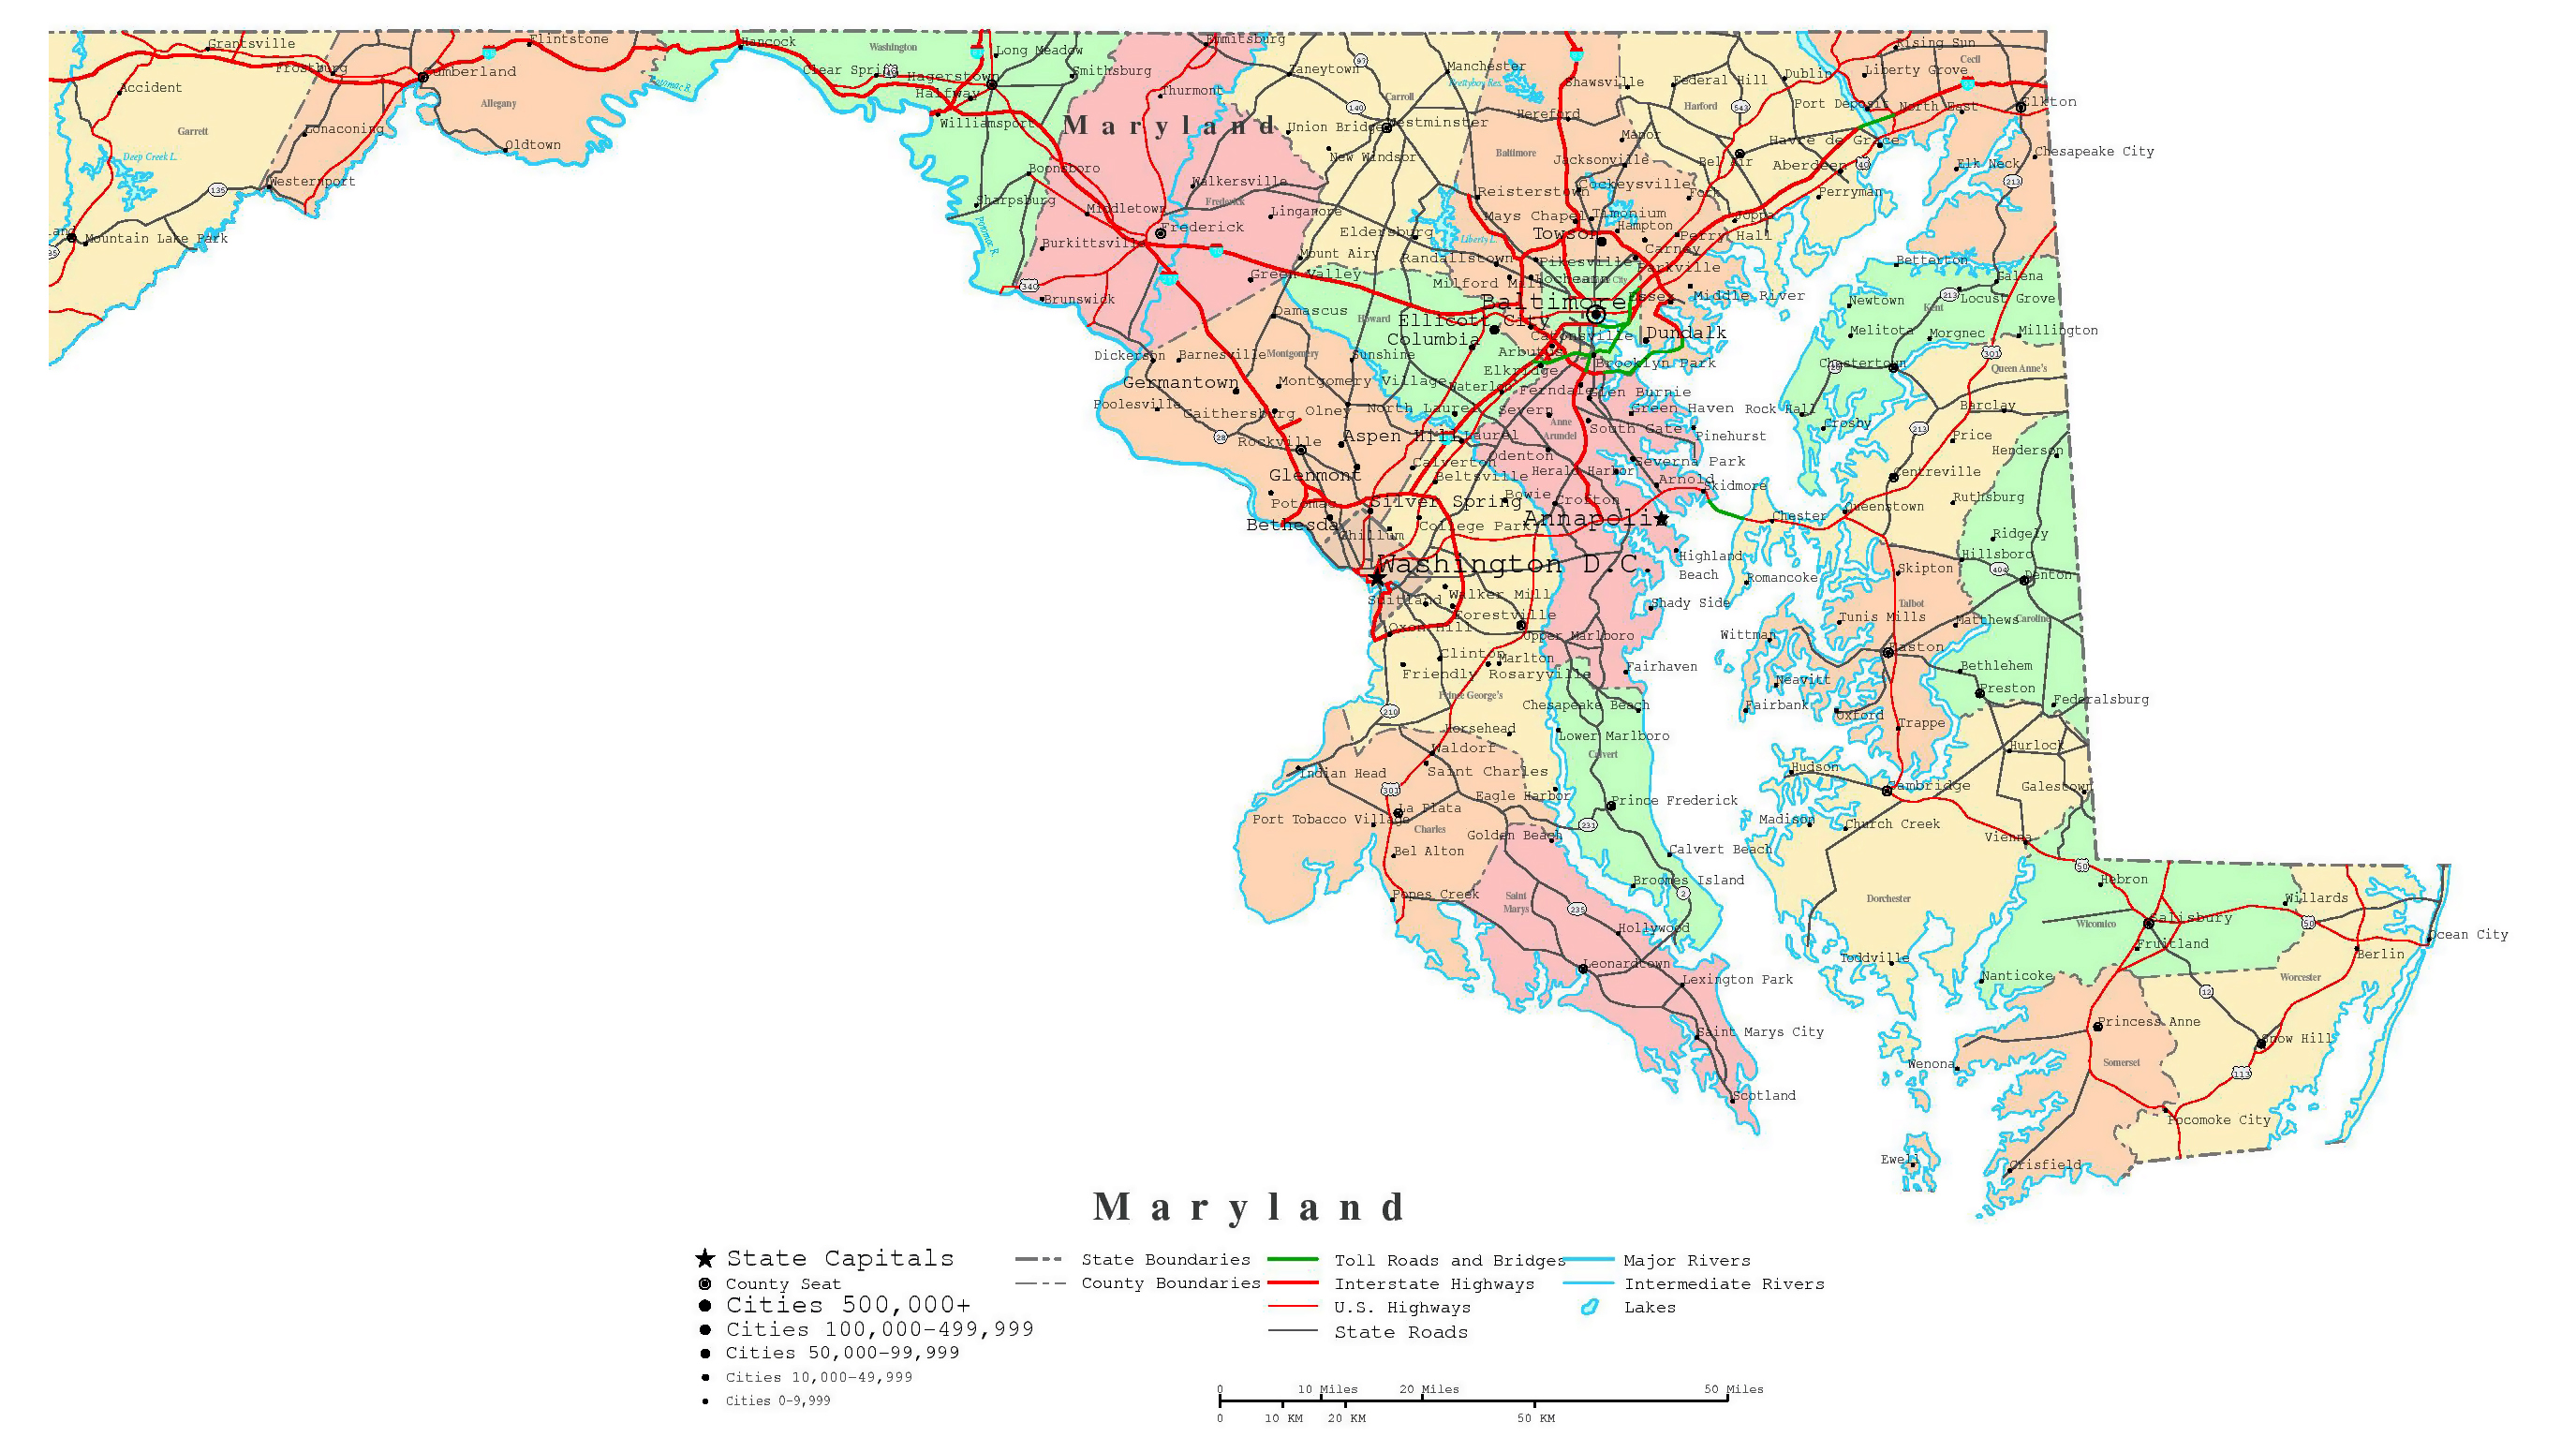 Large Detailed Administrative Map Of Maryland State With Roads Highways And Cities | Maryland ...